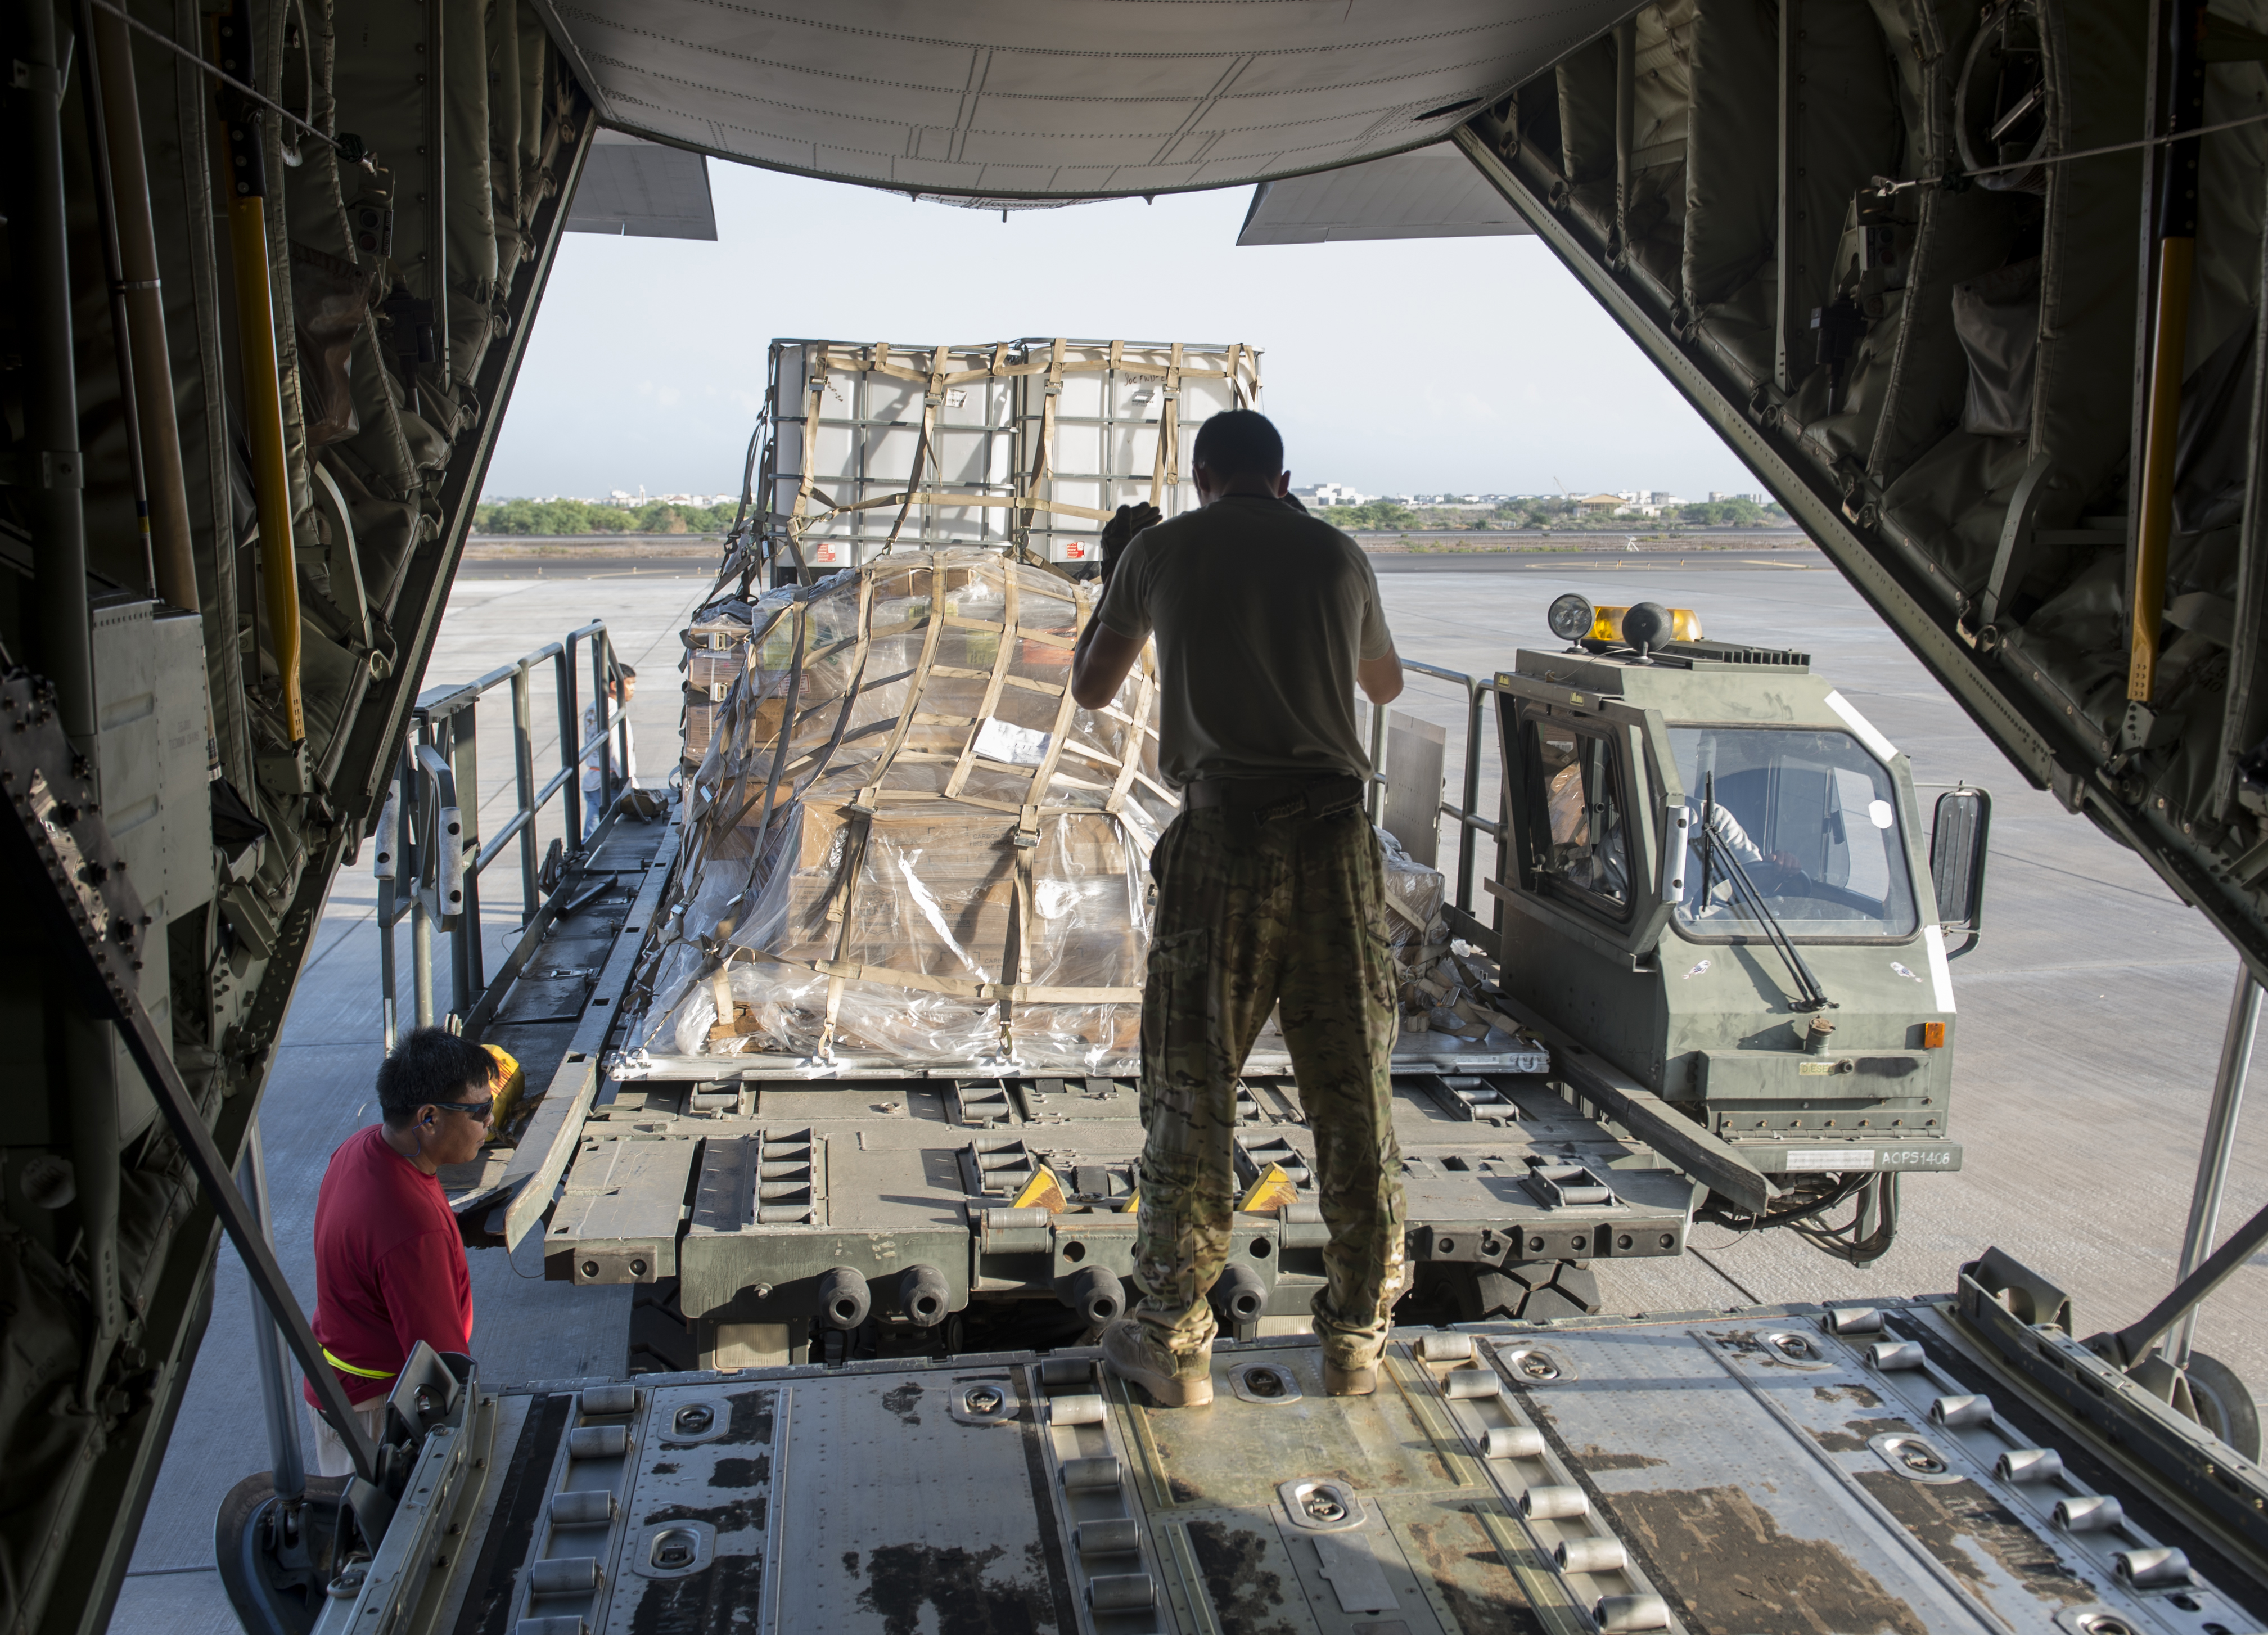 Senior Airman Zachary McGhee, 75th Expeditionary Airlift Squadron loadmaster, directs a K Loader behind a C-130J Super Hercules Nov. 24, 2015, at Camp Lemonnier, Djibouti. The shipment, which consisted of a Humvee and equipment, is one of several coordinated shipments between Combined Joint Task Force-Horn of Africa's Joint Logistics Operations Center and the 75th EAS. (U.S. Air Force photo by Senior Airman Peter Thompson)